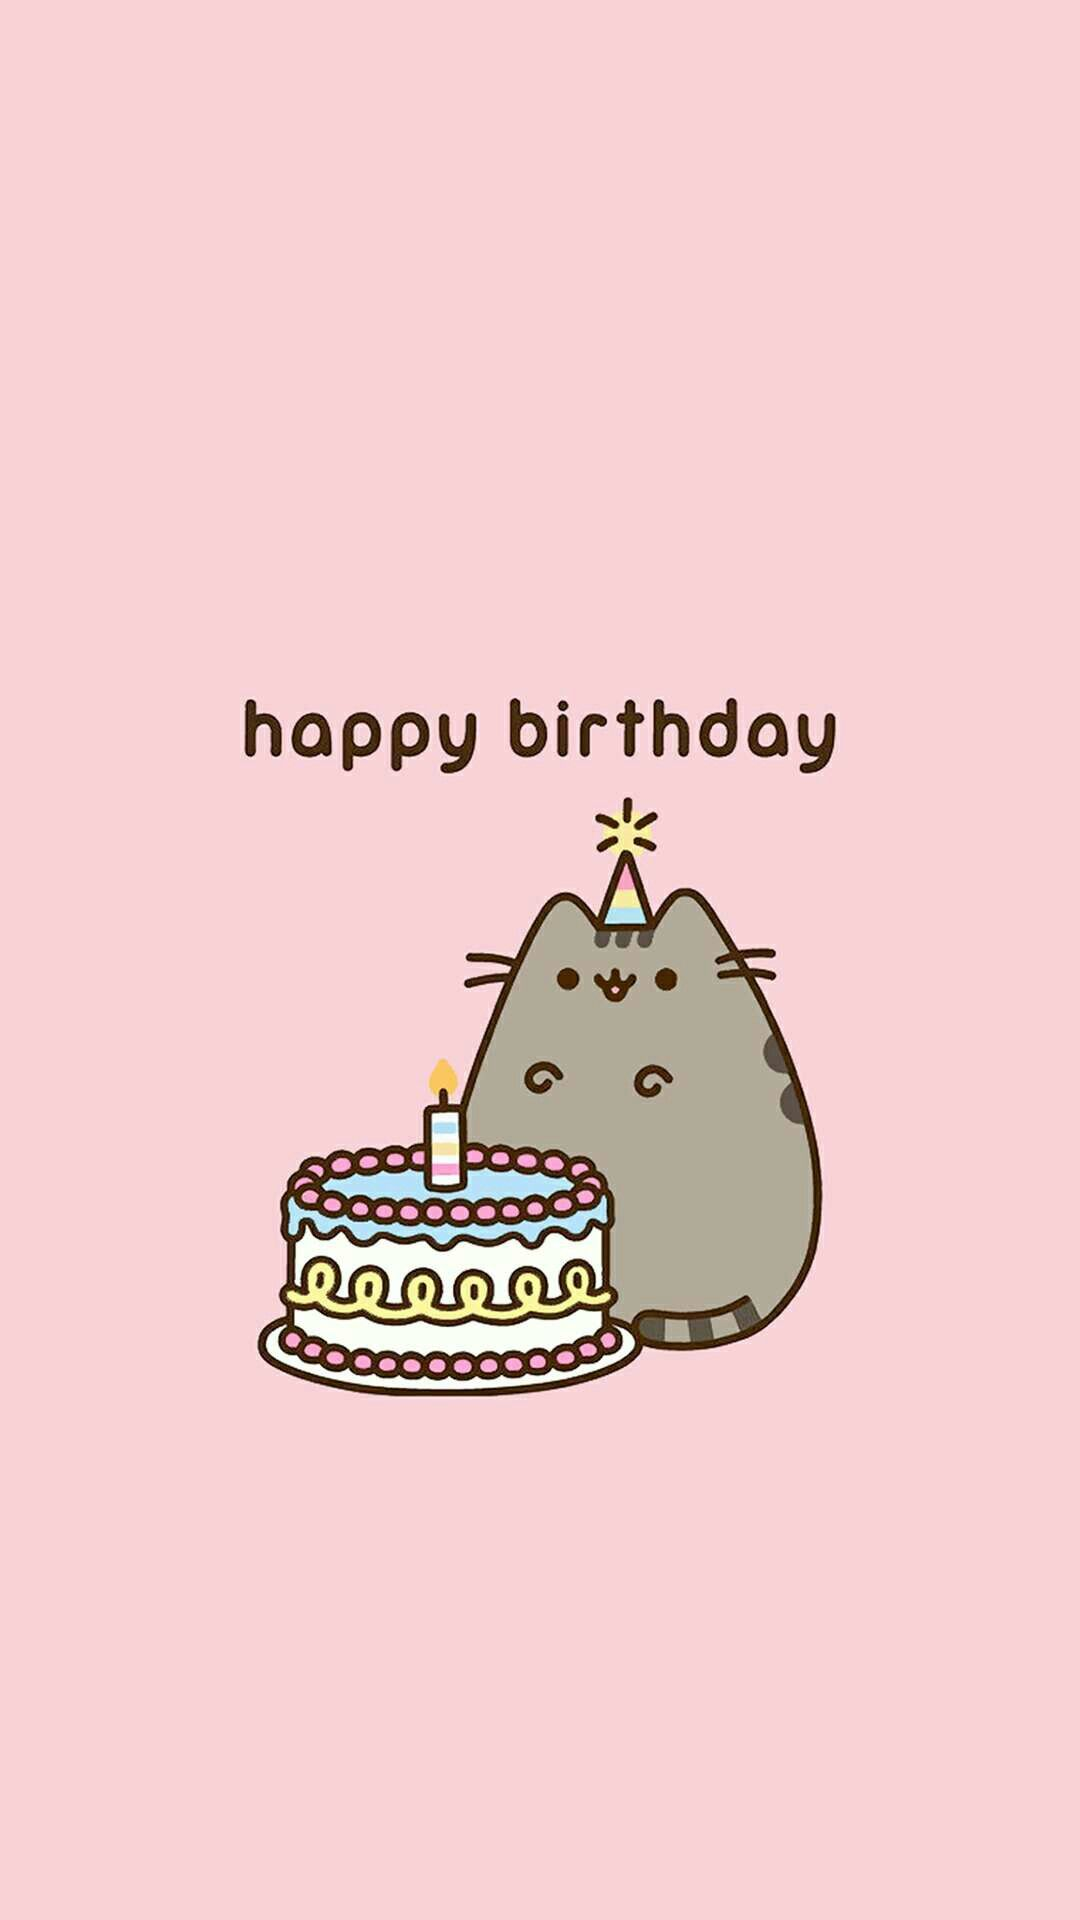 Pin By Crystal Auslam On Pusheen The Cat Wallpaper Cute